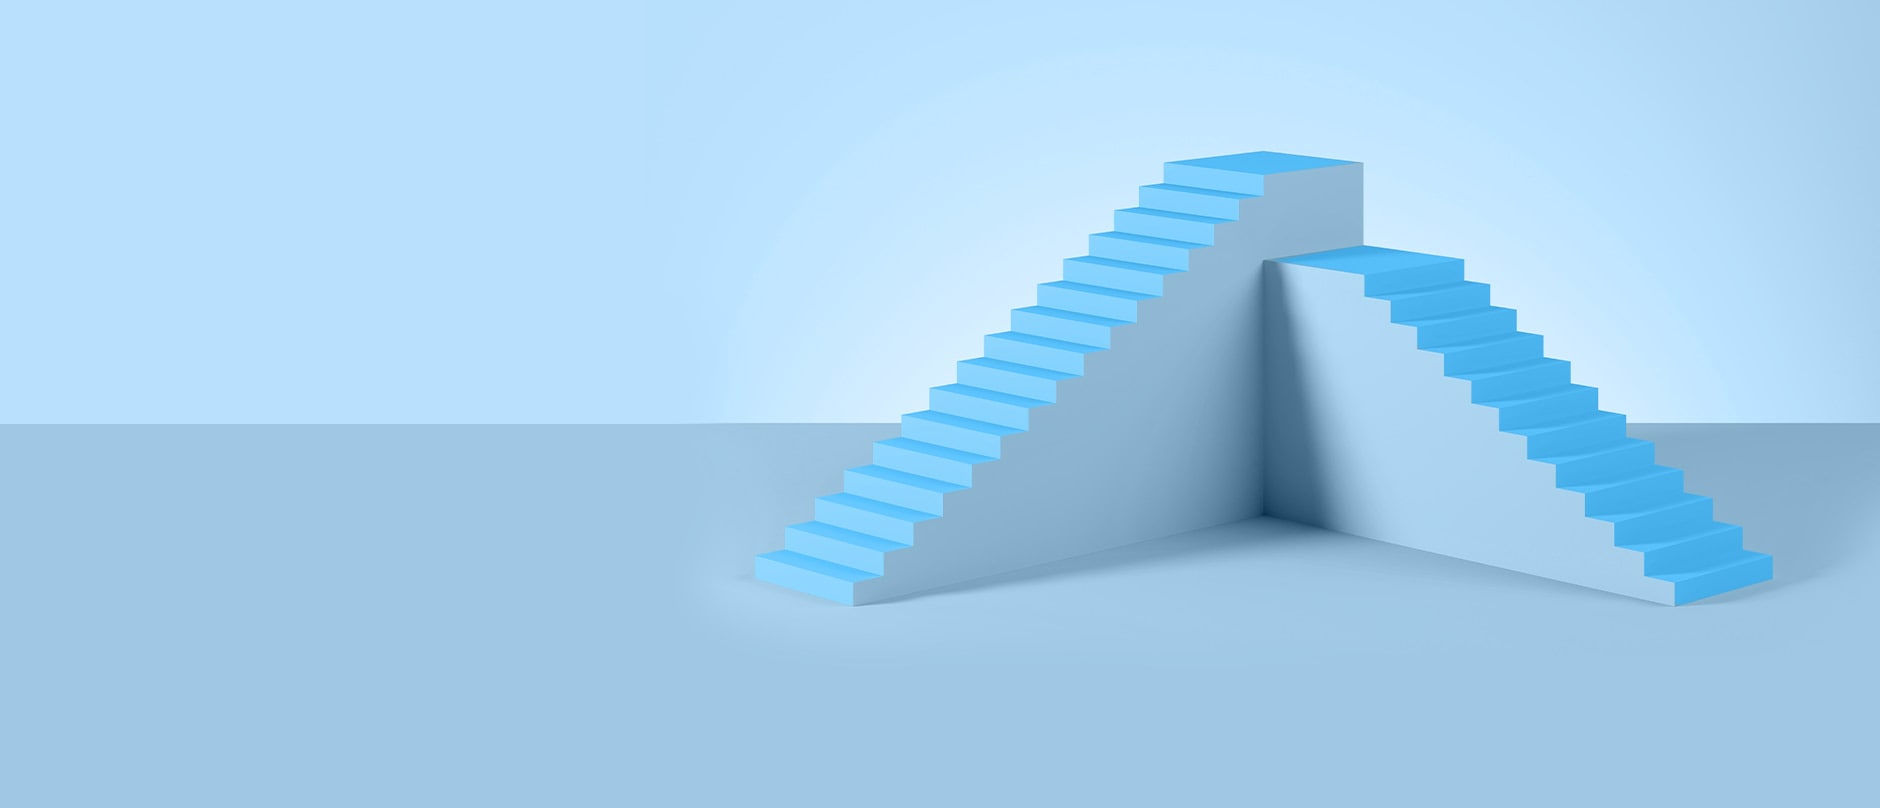 Two blue stair cases on a blue background